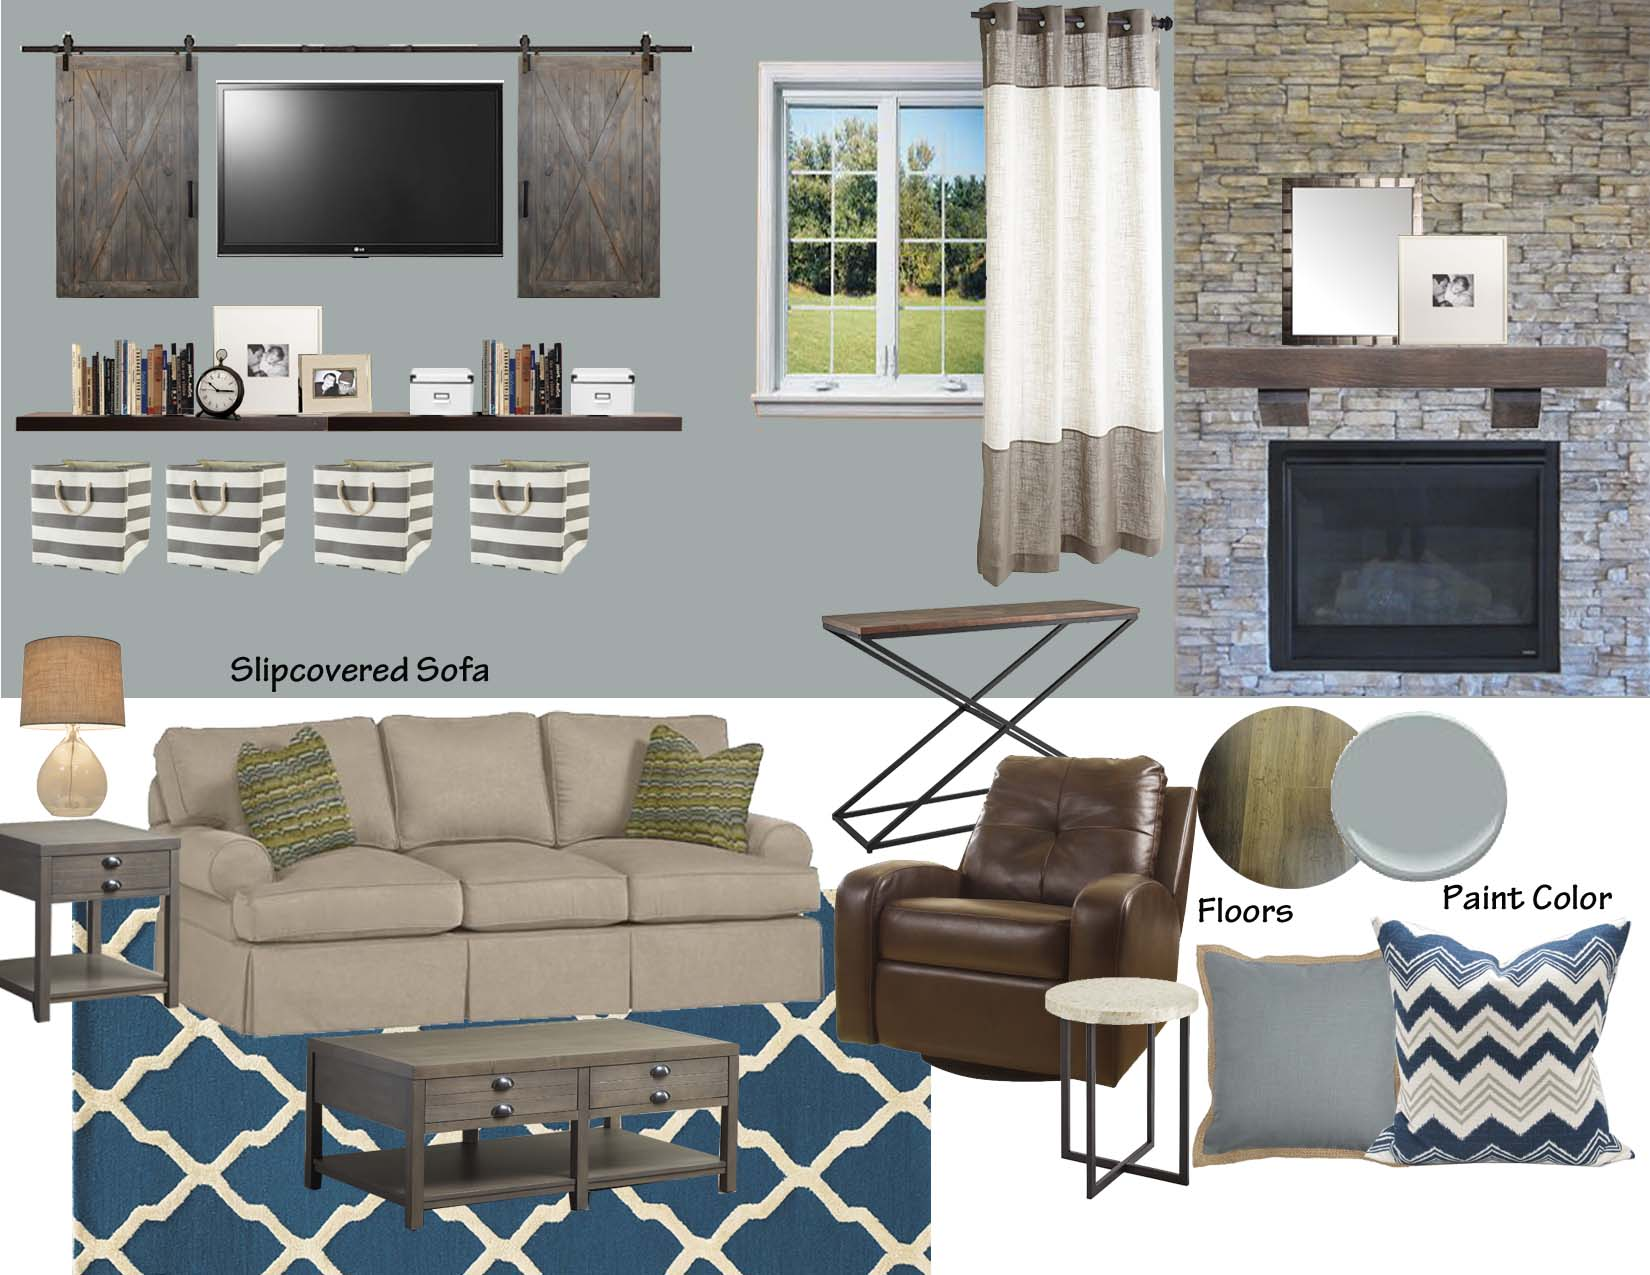 Nice Modern Rustic Living Room Inspiration Board Part 24